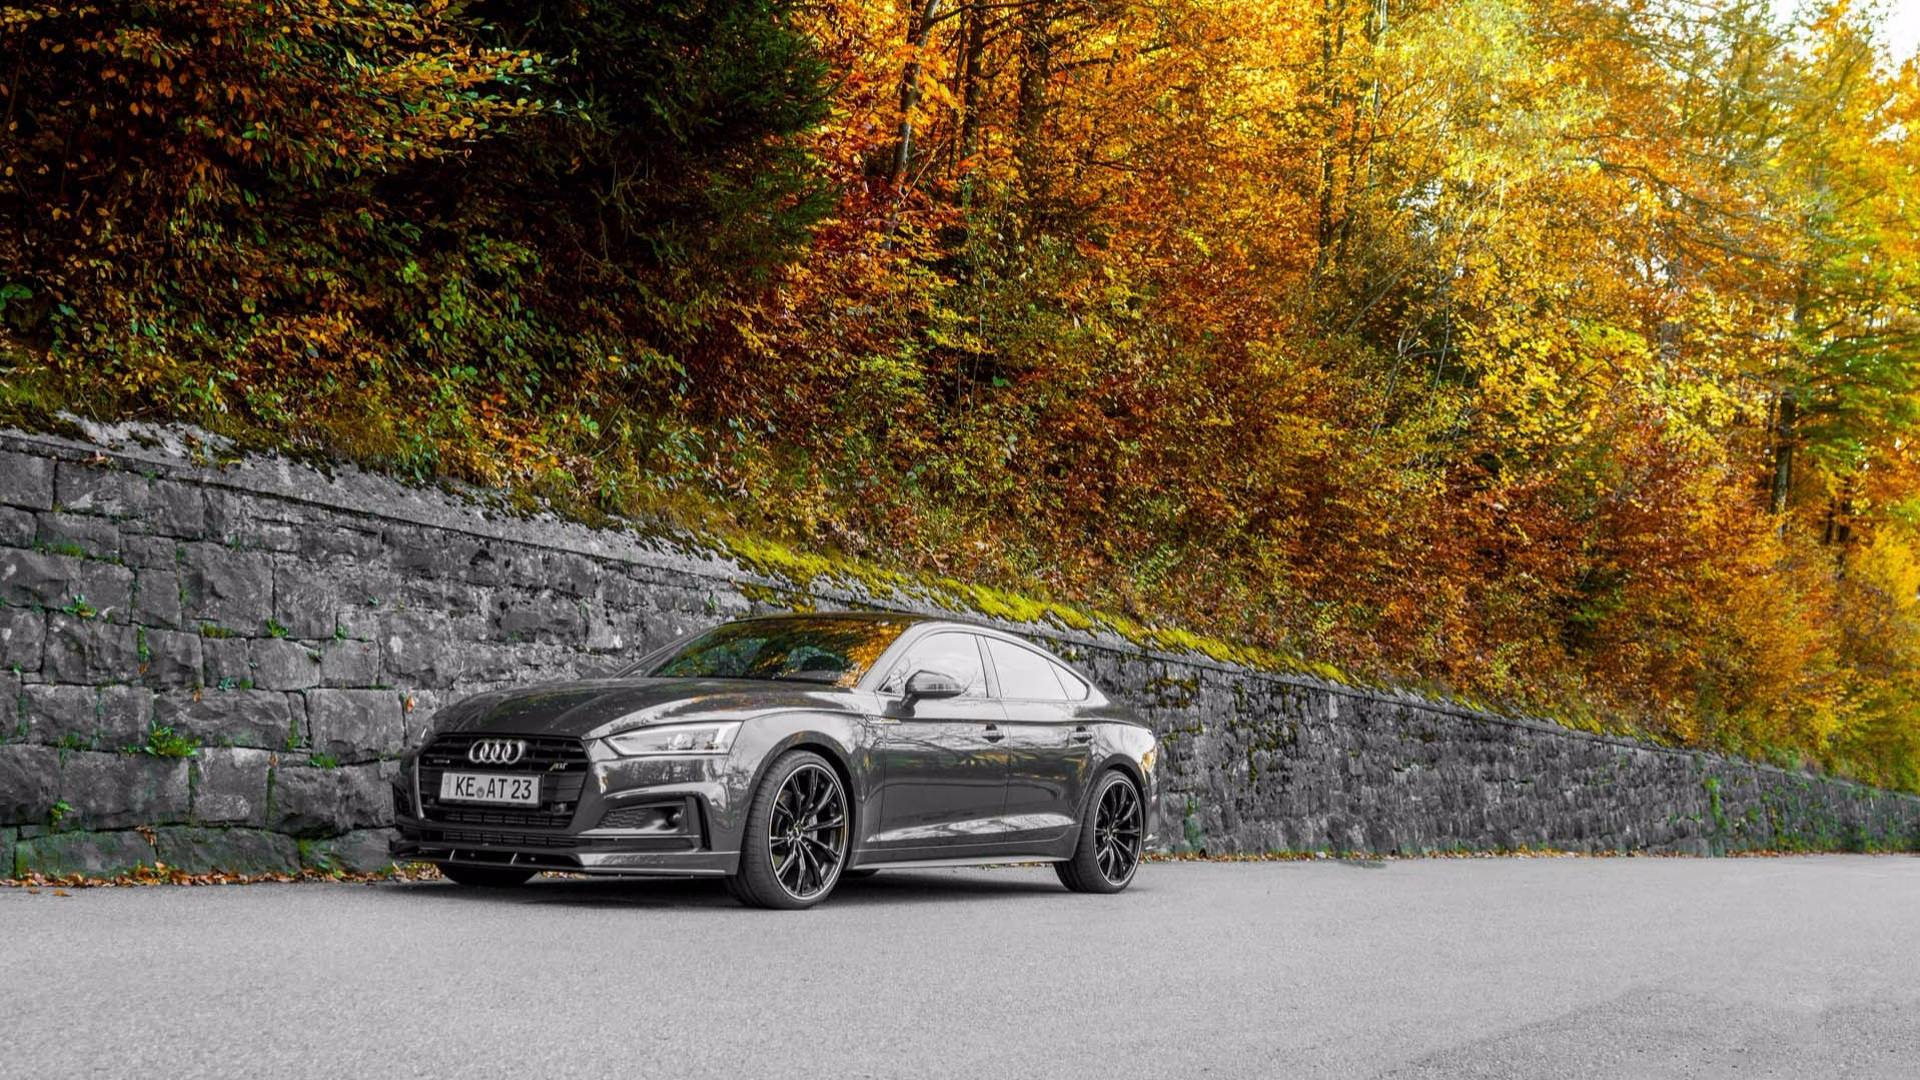 Audi S5 Gets 425 HP & Body Kit from ABT - autoevolution